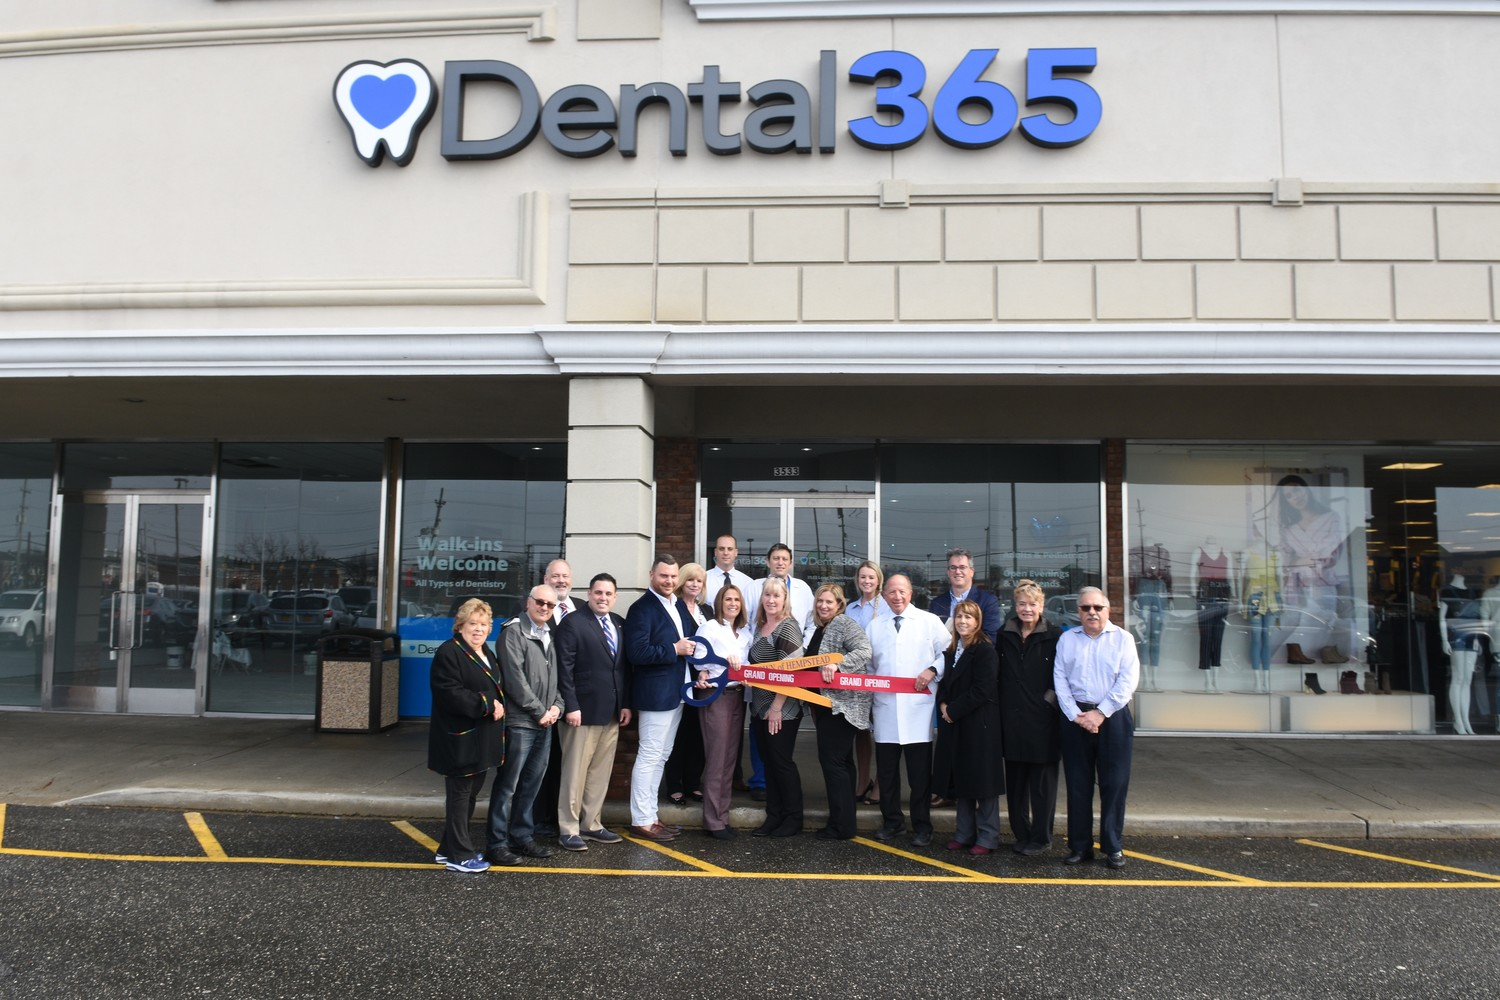 Local officials and the Oceanside Chamber of Commerce celebrated the opening of a Dental365 practice in Oceanside on Feb. 20. It brings the dental office chain's Long Island presence up to 12 locations.